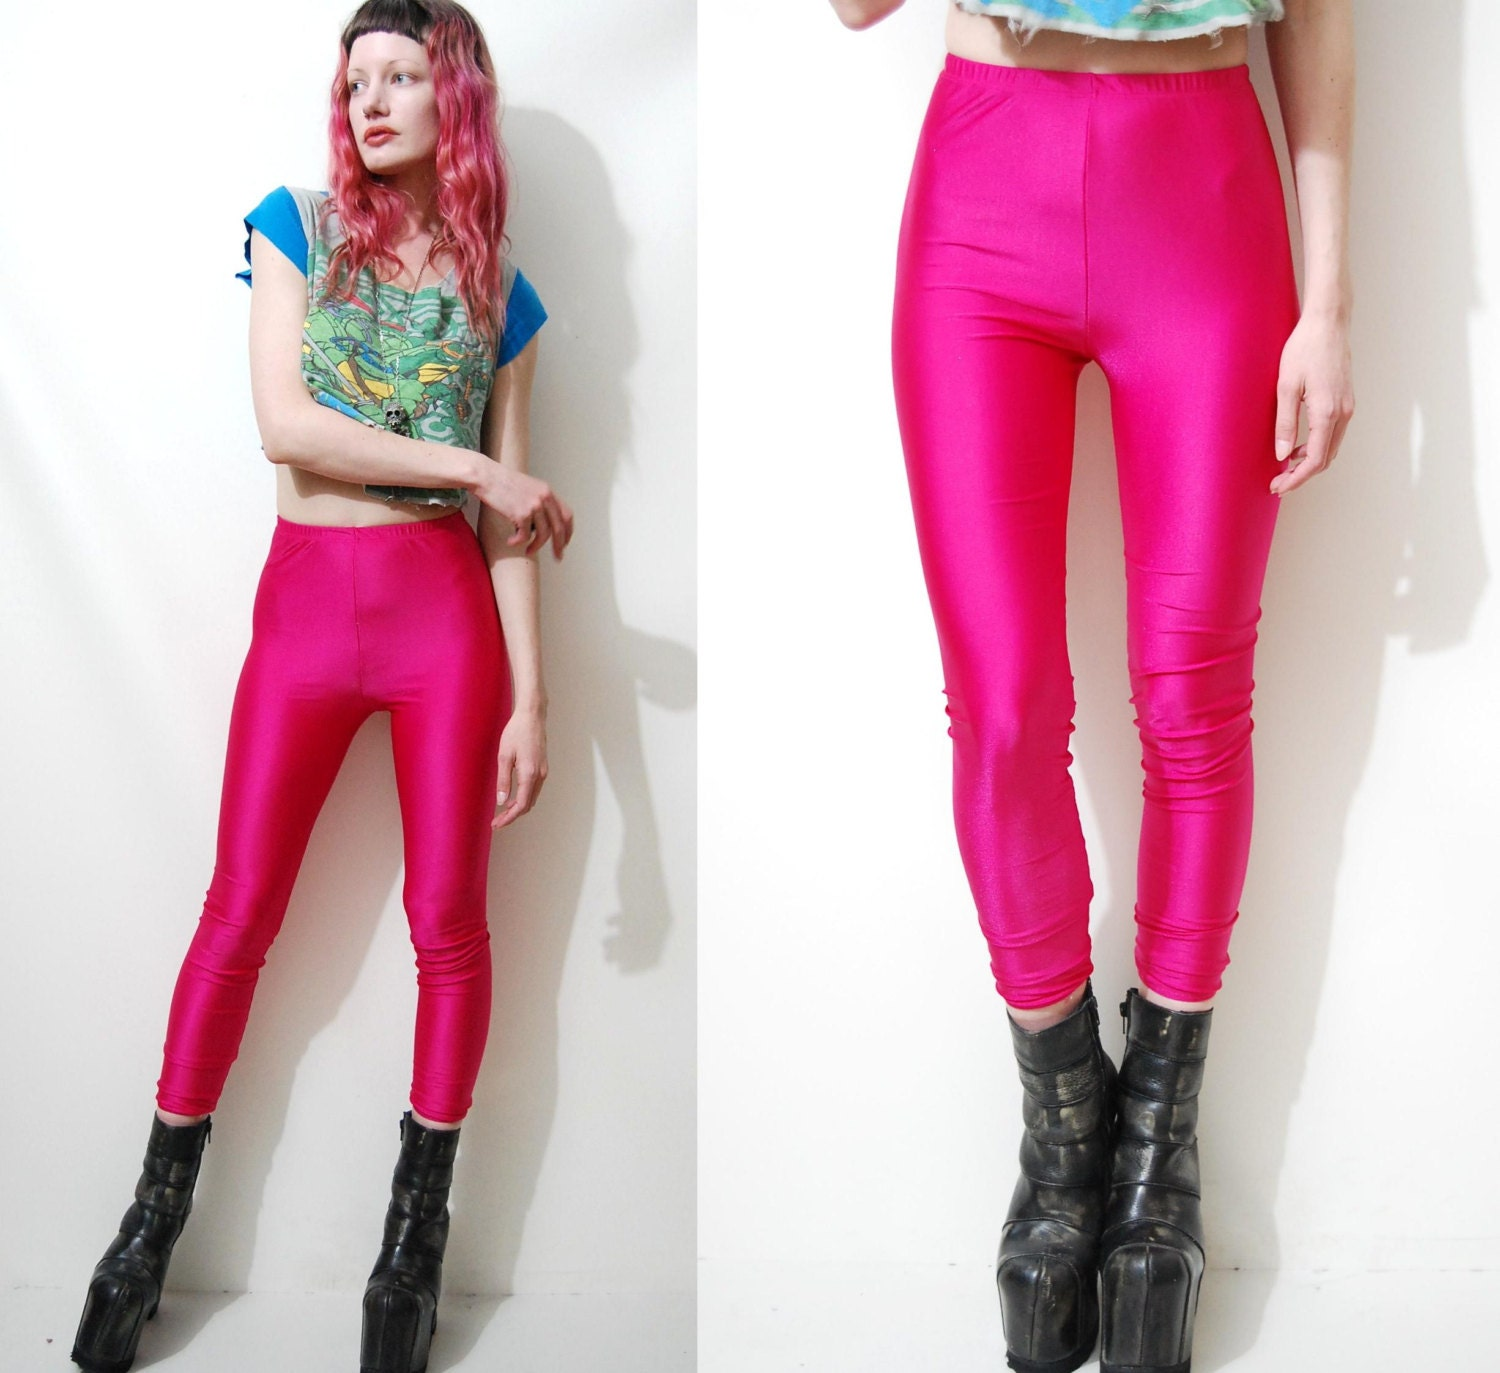 80s Vintage SPANDEX Lycra Leggings SHINY Bright Hot Pink